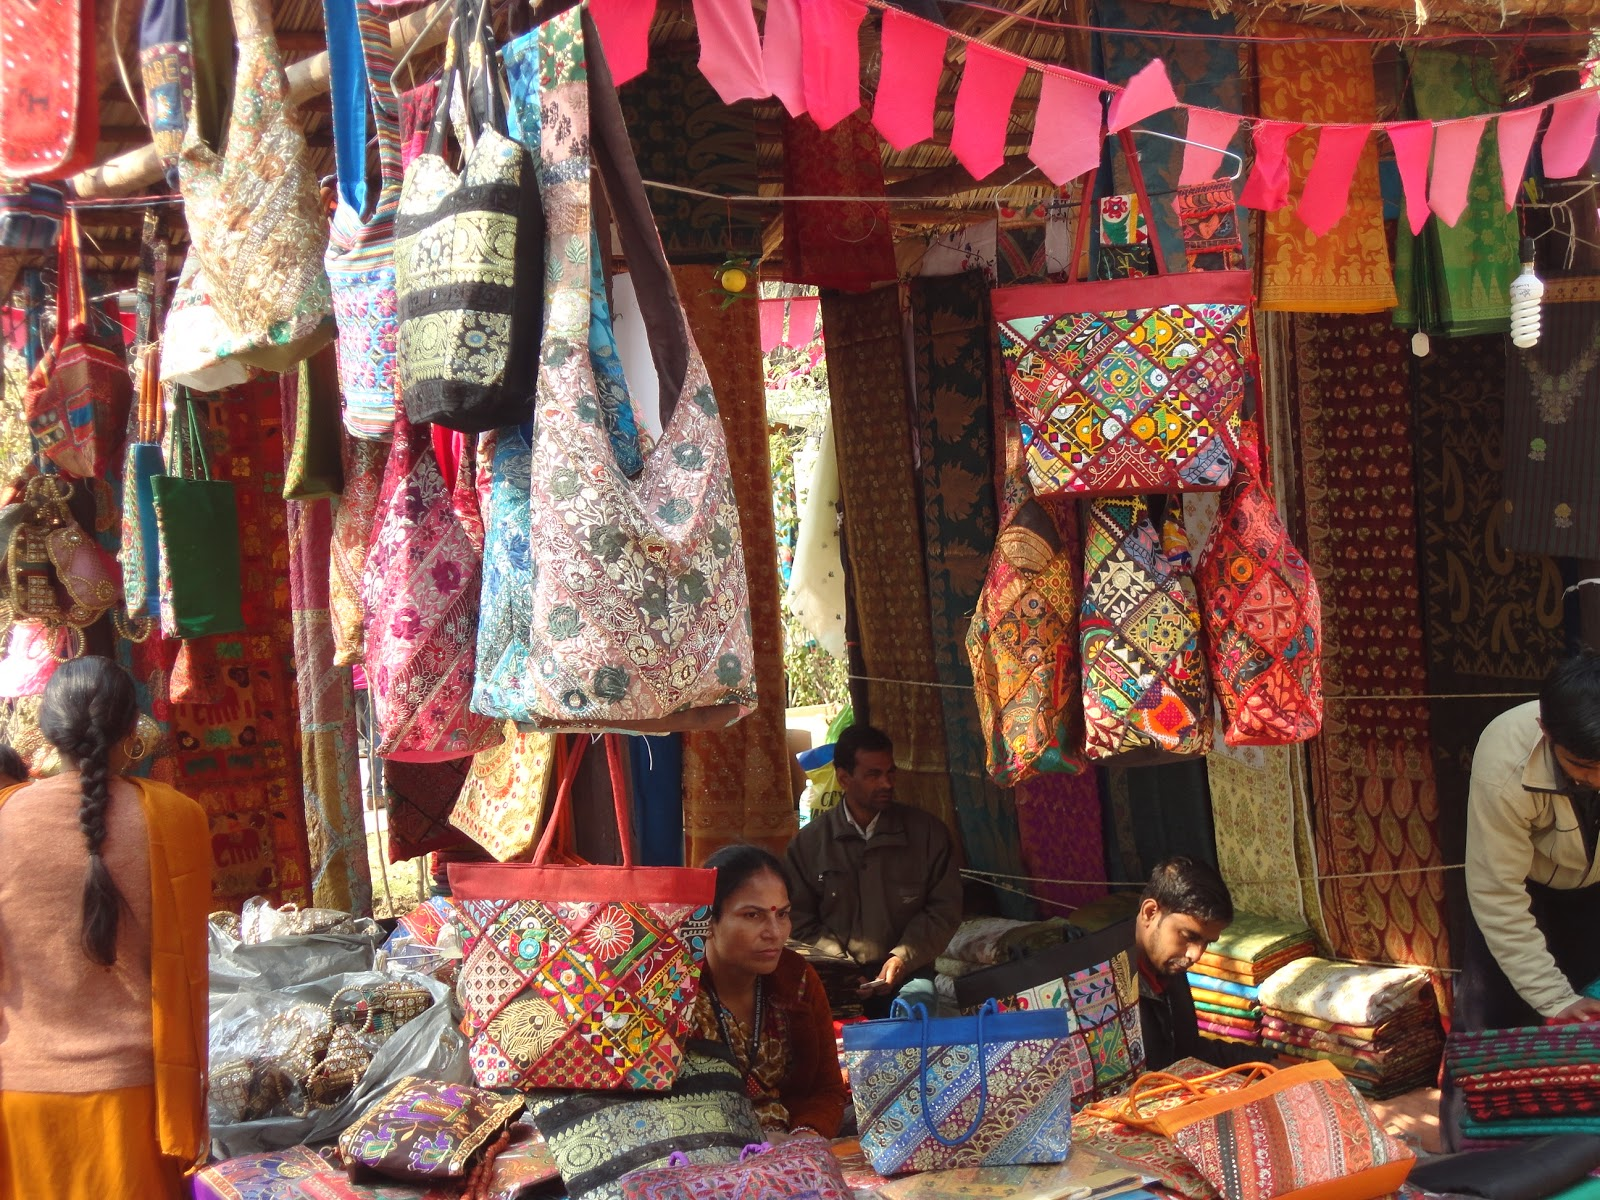 Handcrafted Handbags at Surajkund Mela,India